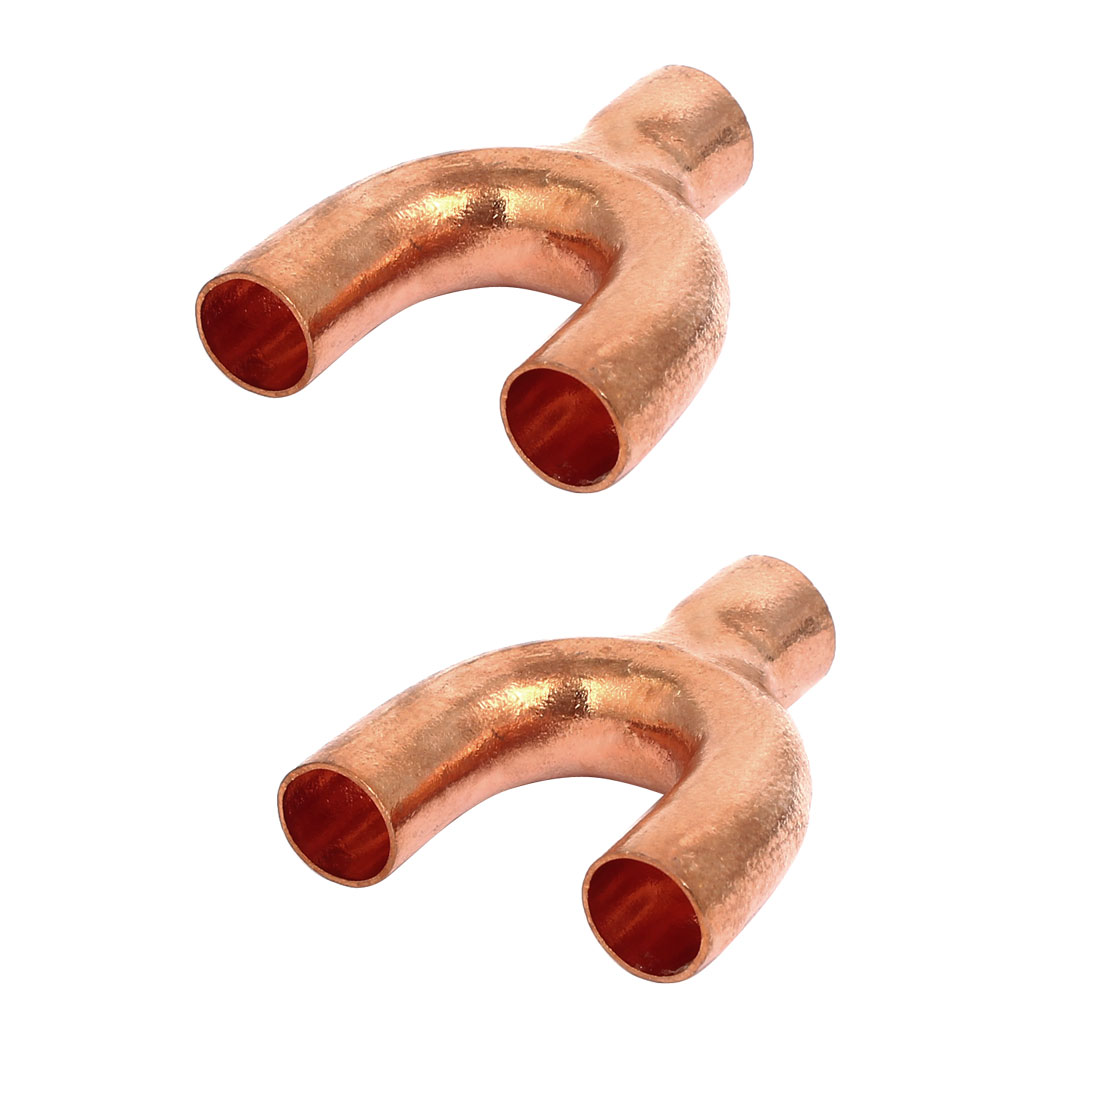 13mm x 10.5mm Inner Dia Copper Pipe Fitting Air Conditioner Y Branch 2pcs